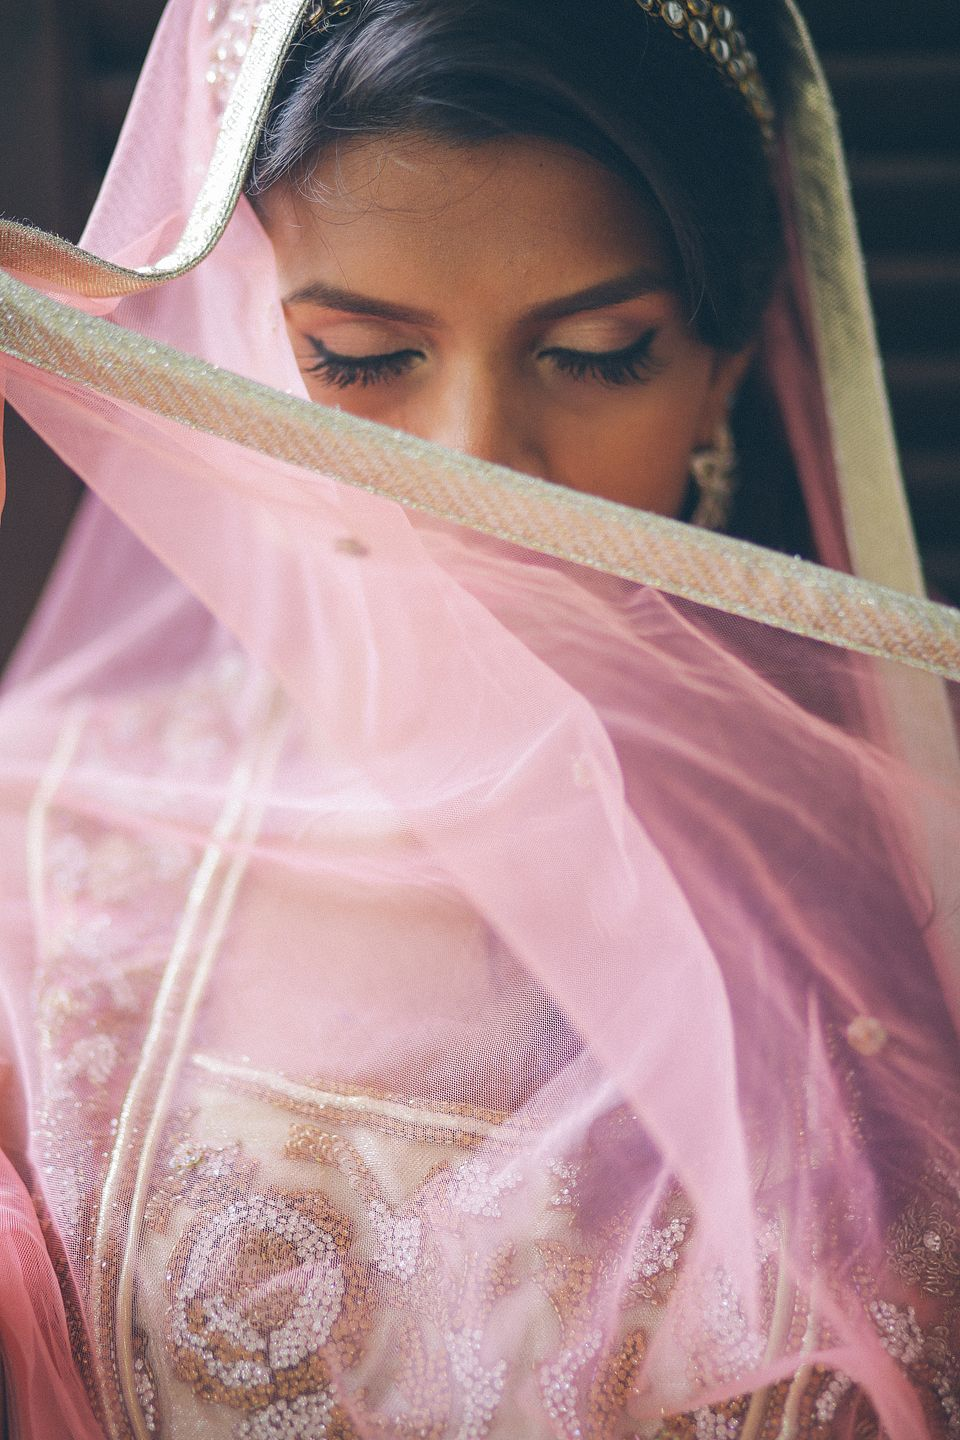 Pin by tiphaine grenet on inde pinterest india wedding and wedding